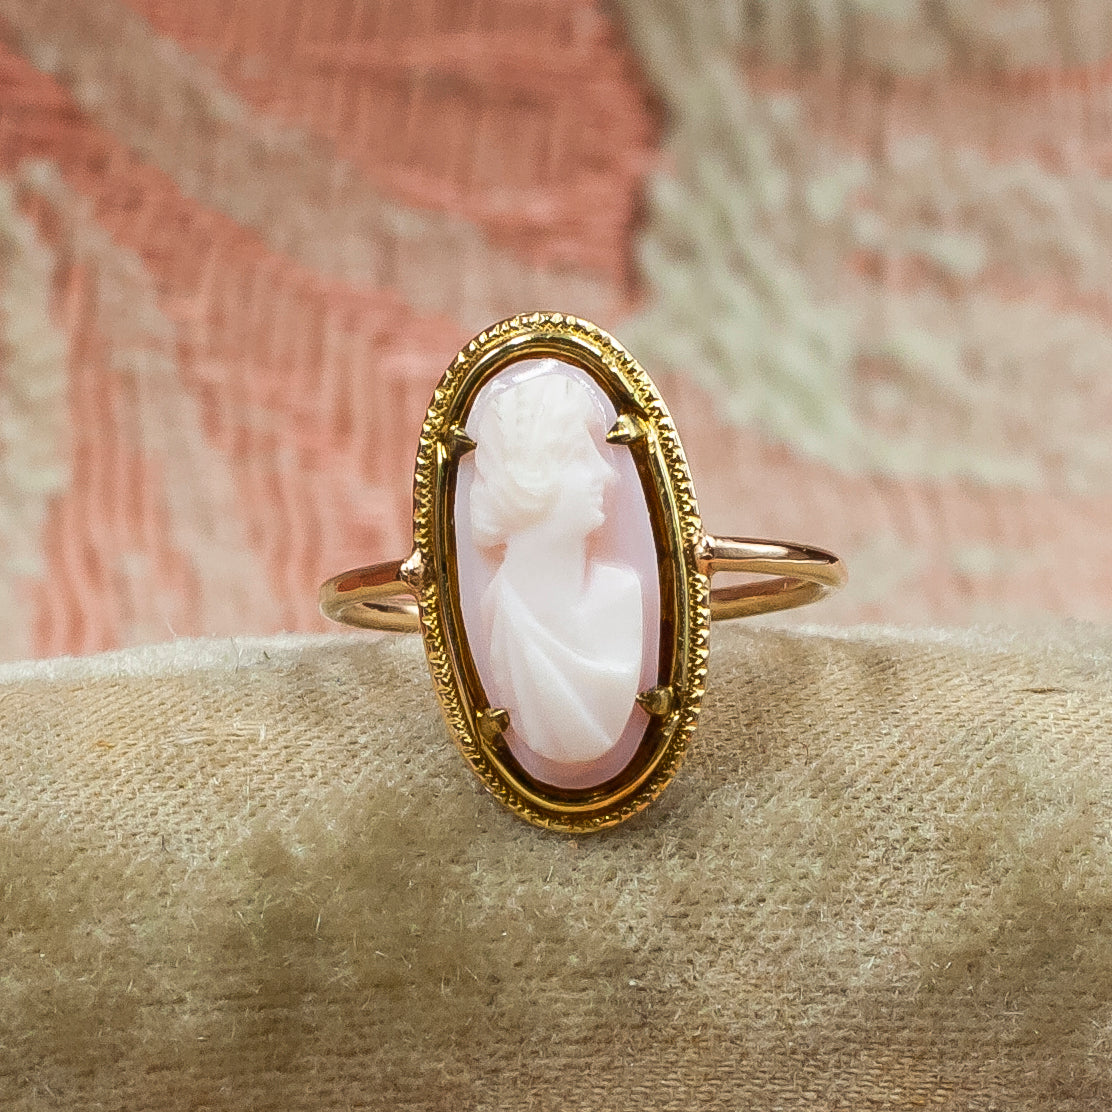 Queen Conch Cameo Ring c1900